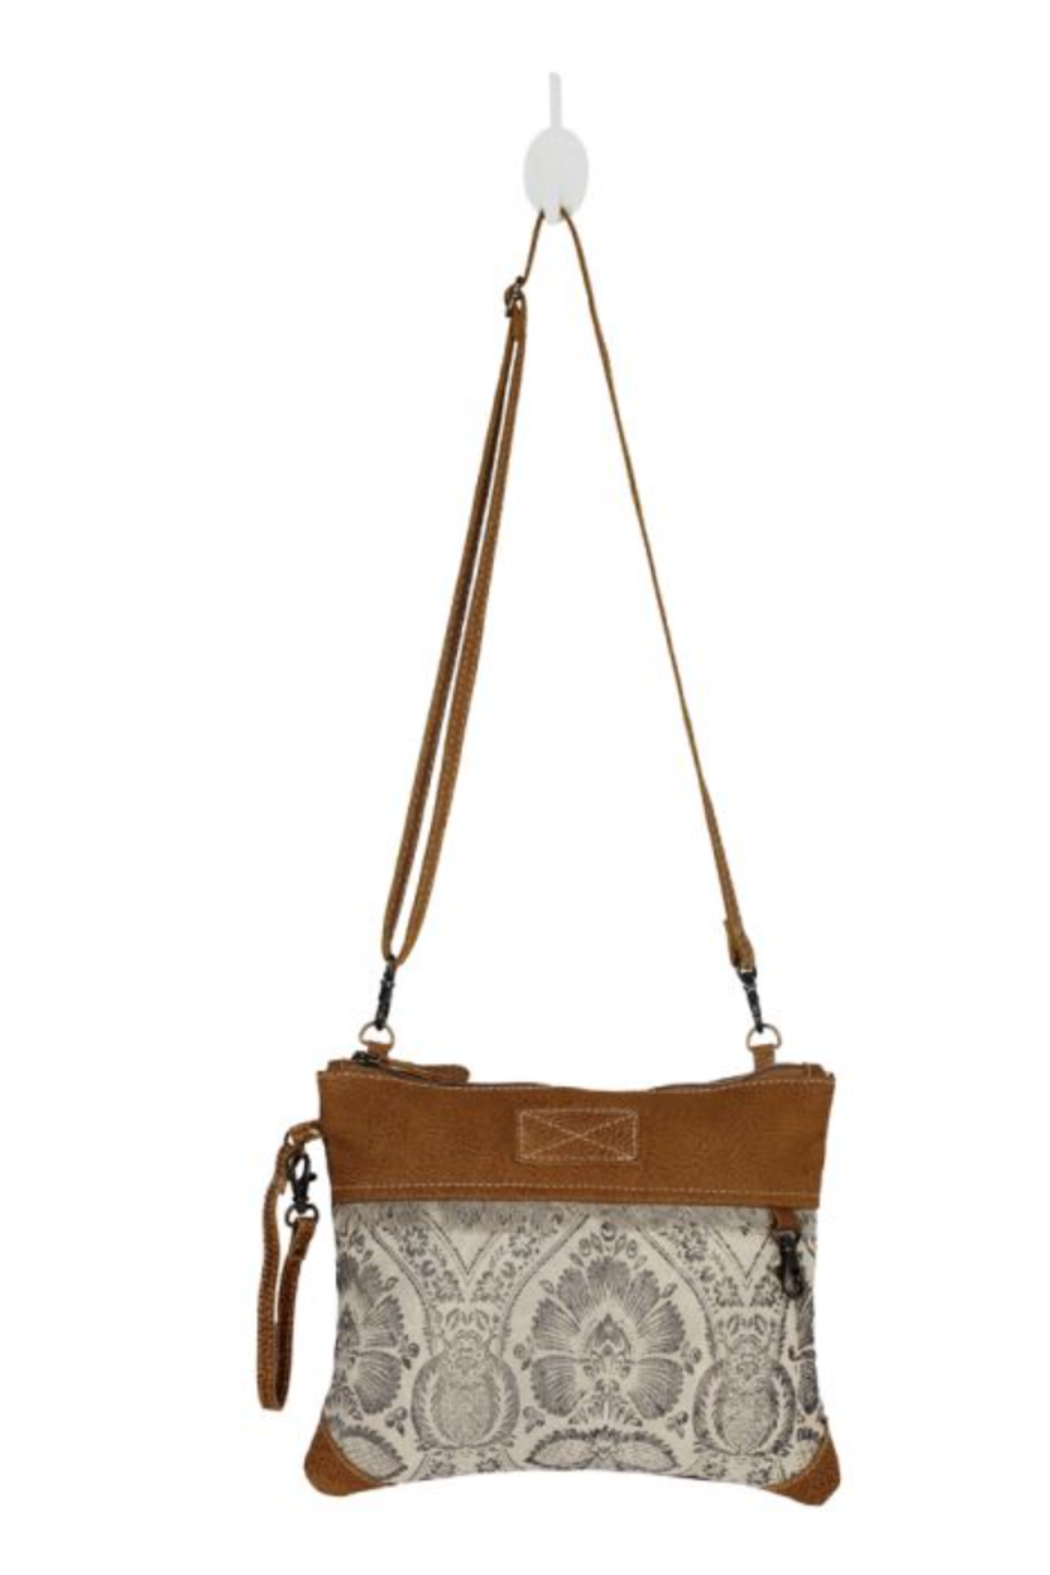 MarkWEST-Myra Bag Floral Flow Small & Cross Body Bag - Main Image